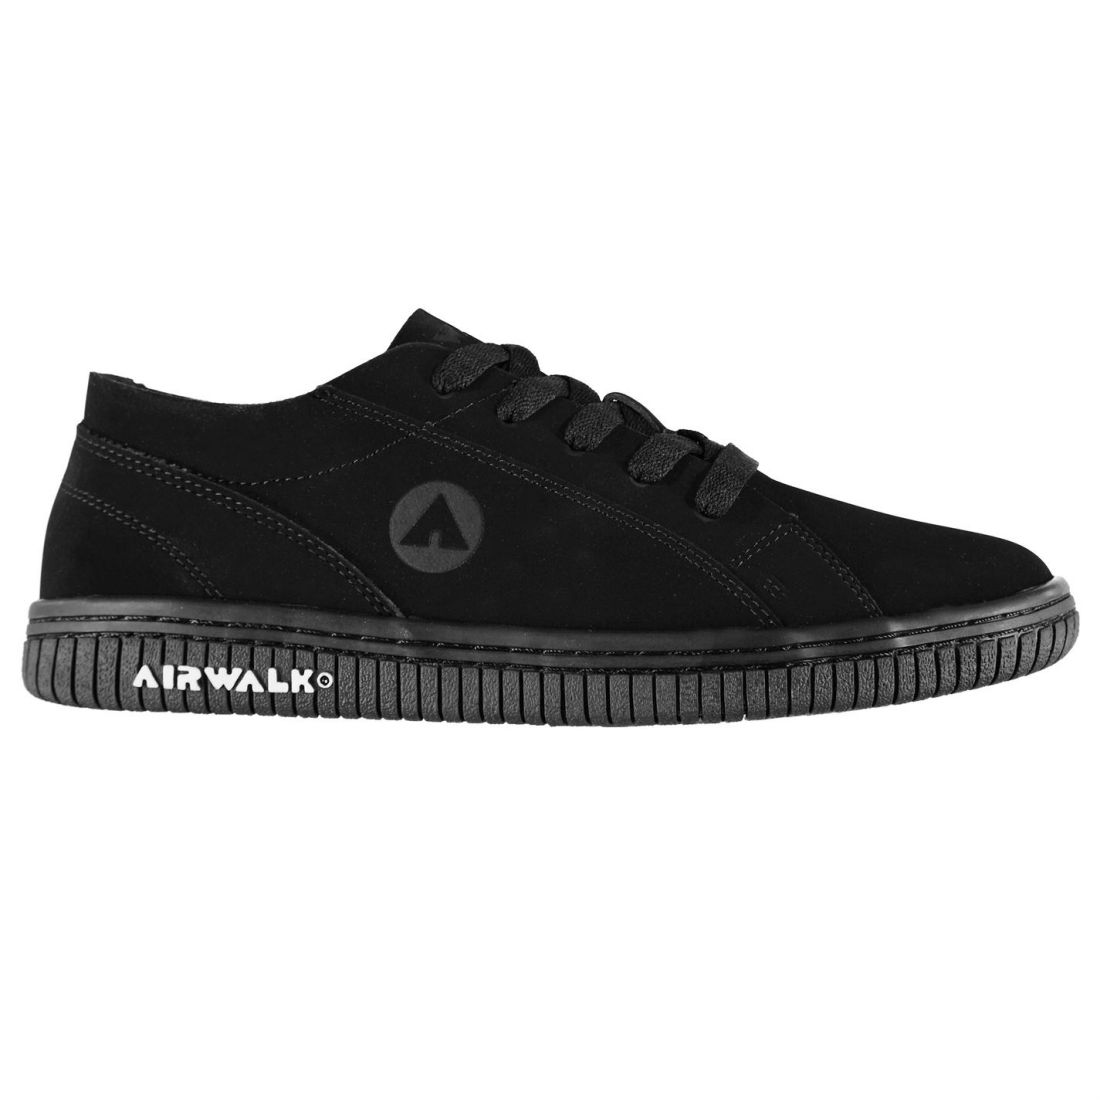 new arrival e8b56 8cdc7 Image is loading Airwalk-Mens-The-One-Trainers-Low-Lace-Up-